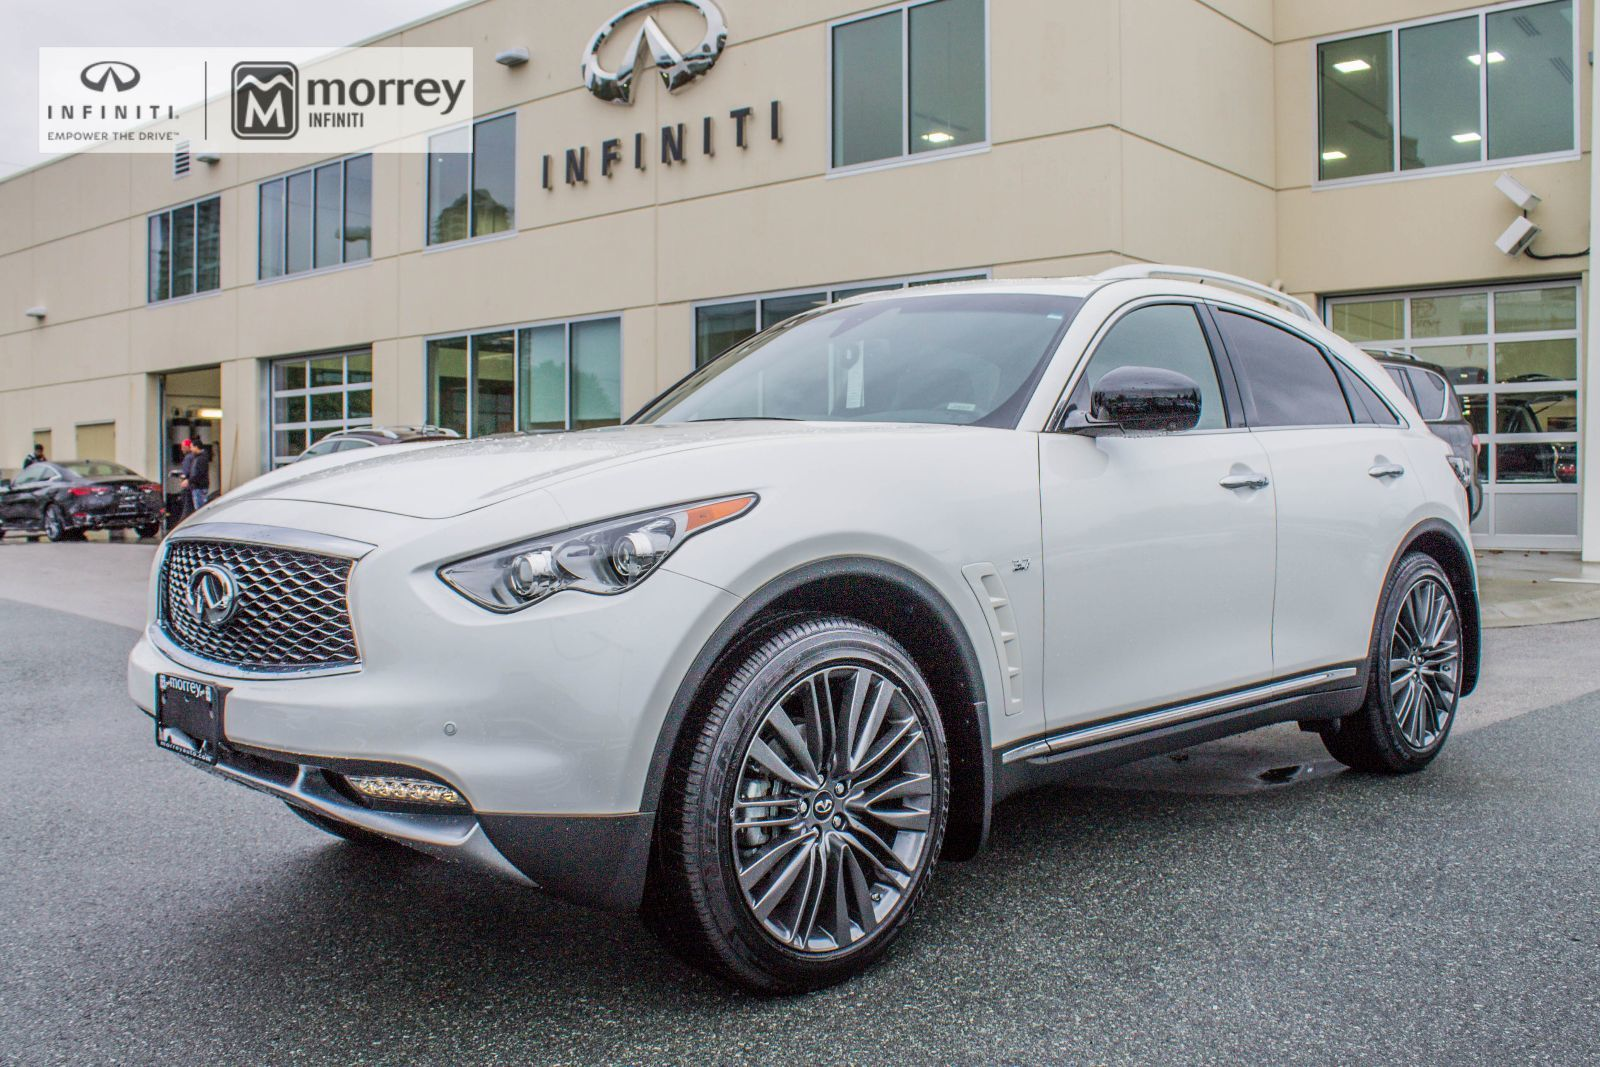 2018 infiniti qx70. Exellent 2018 2017 Infiniti QX70 Limited Technology Is Here Customize Yours Today For  Sale  Nissan Burnaby Intended 2018 Infiniti Qx70